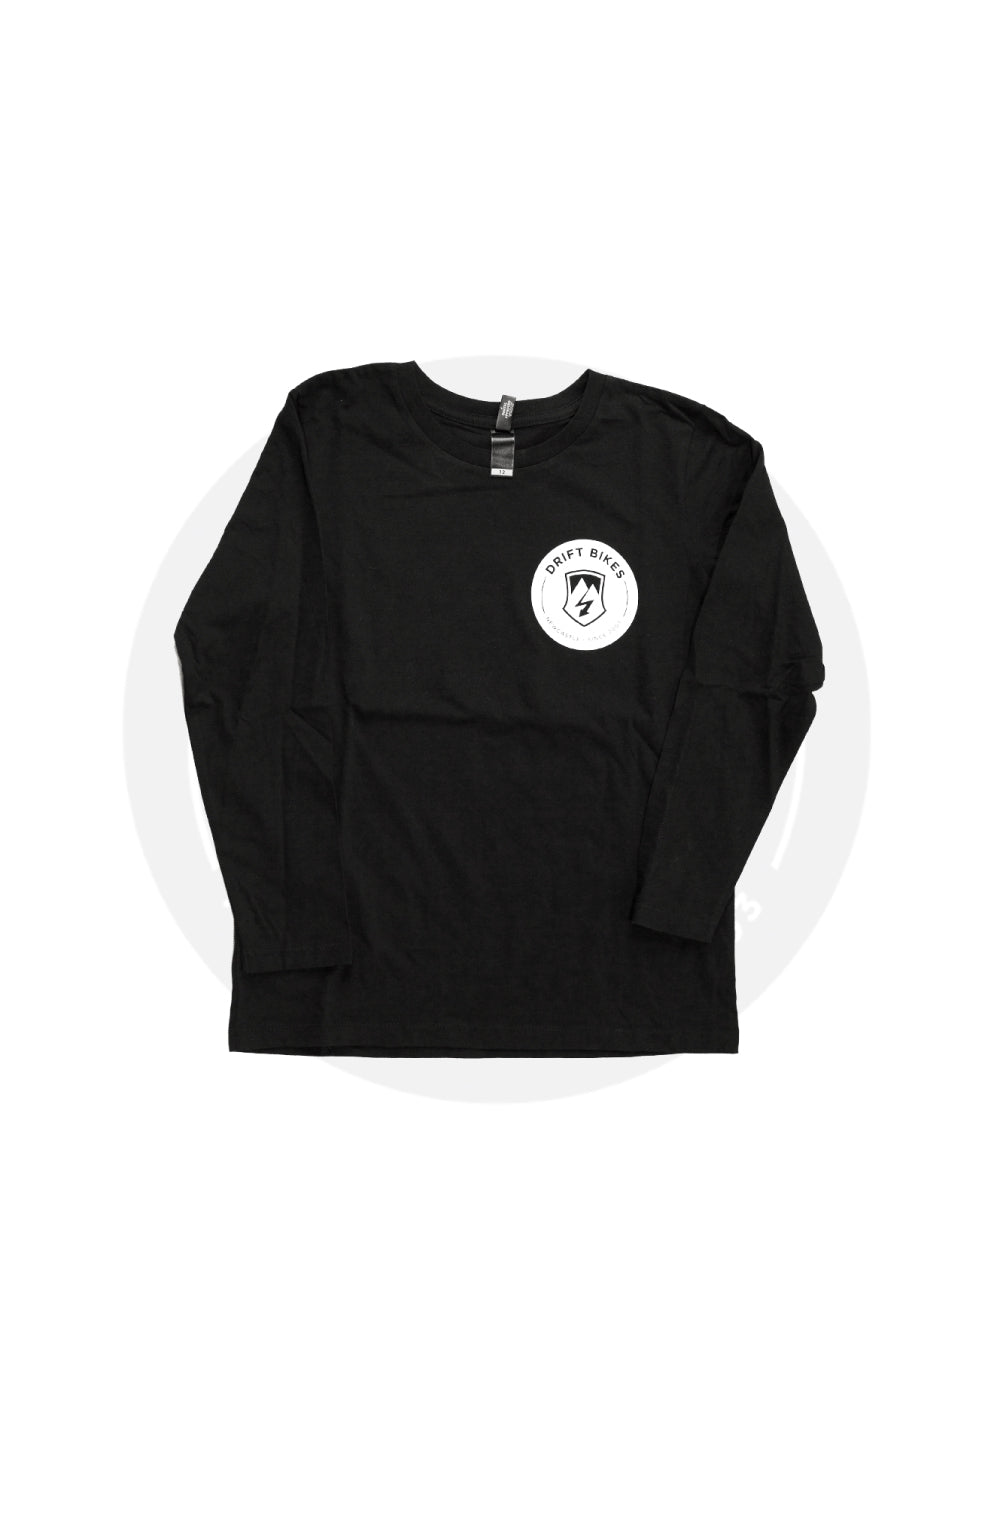 DRIFT FULL CIRCLE SHIRT LONG SLEEVE BLACK